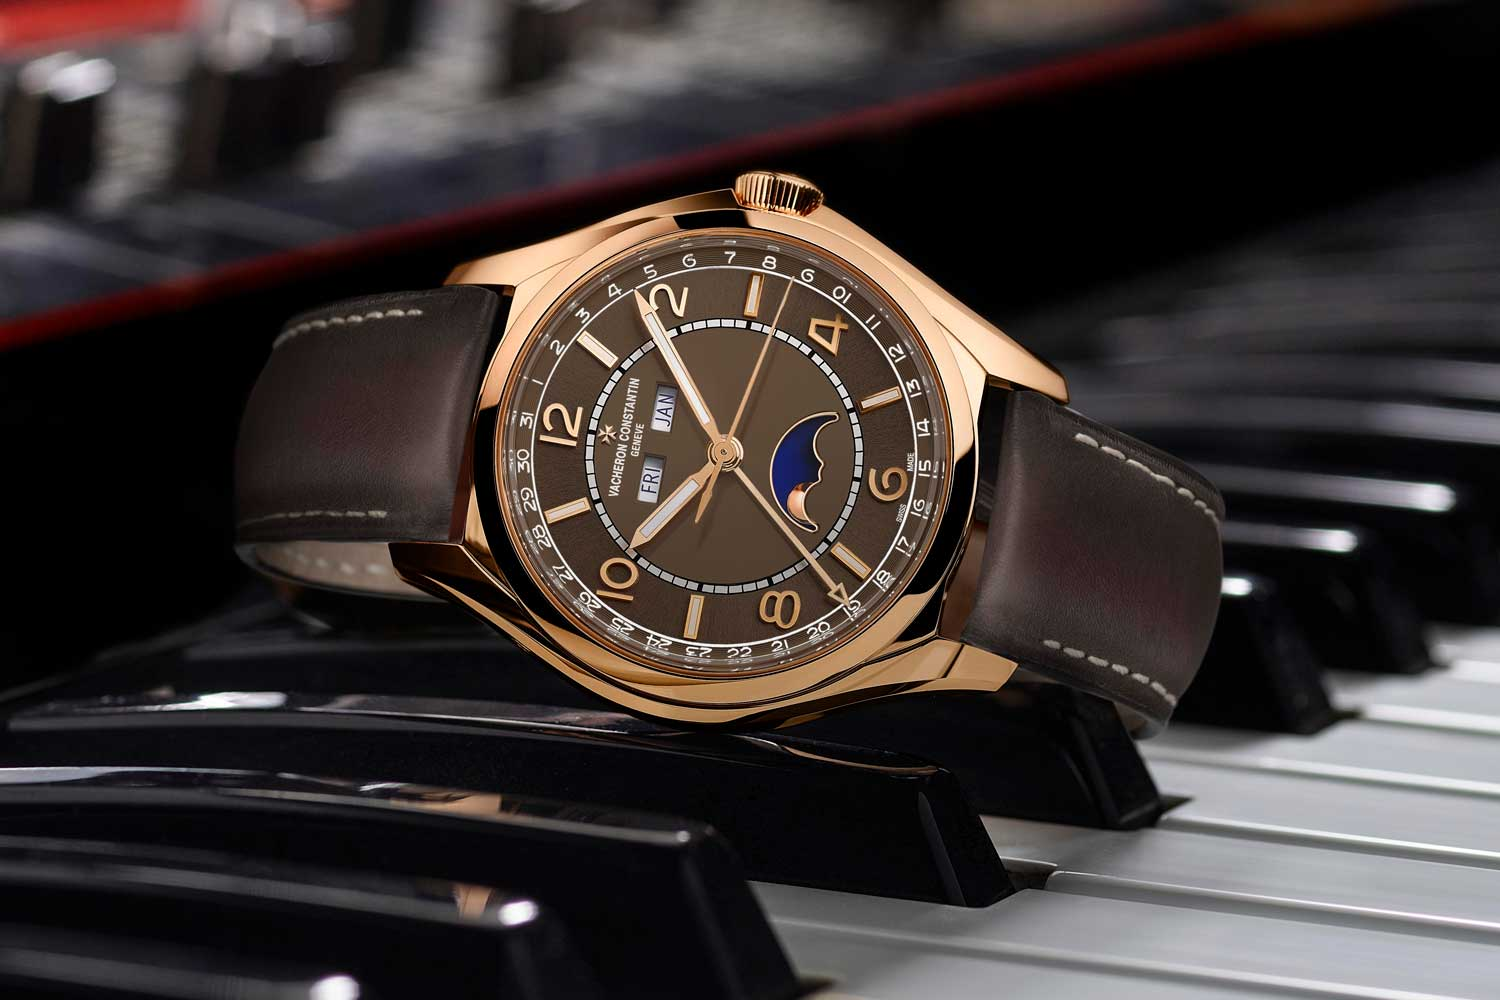 The new Vacheron Constantin Fiftysix Complete Calendar in pink gold with sepia dial.